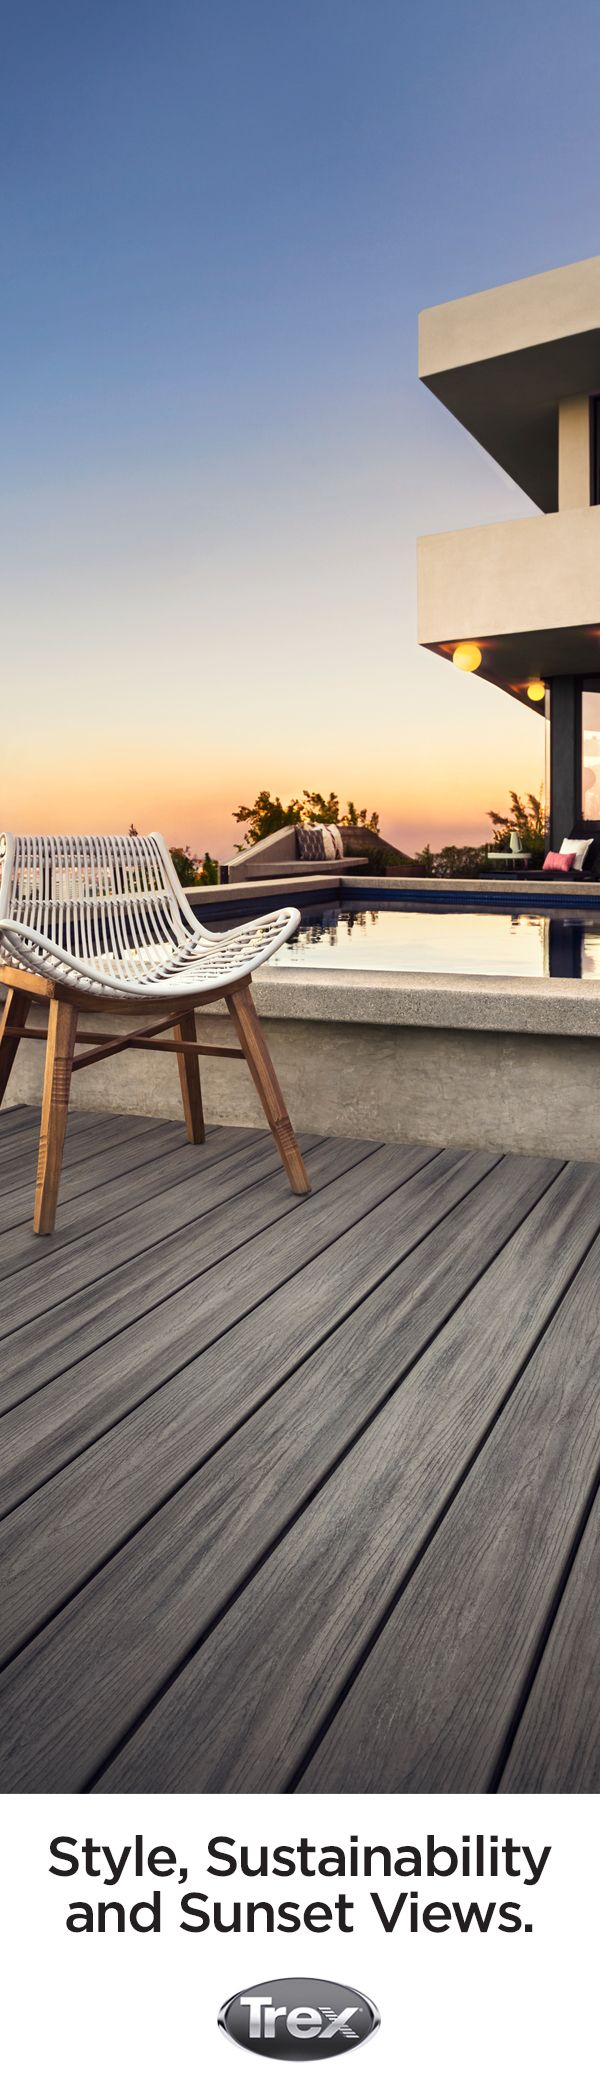 Trex composite decking in Island Mist offers hassle-free maintenance, long-lasting style, and sustainability in a calm, silvery-grey shade. Try Trex in Island Mist to design your outdoor sanctuary, and order deck samples at shop.trex.com.